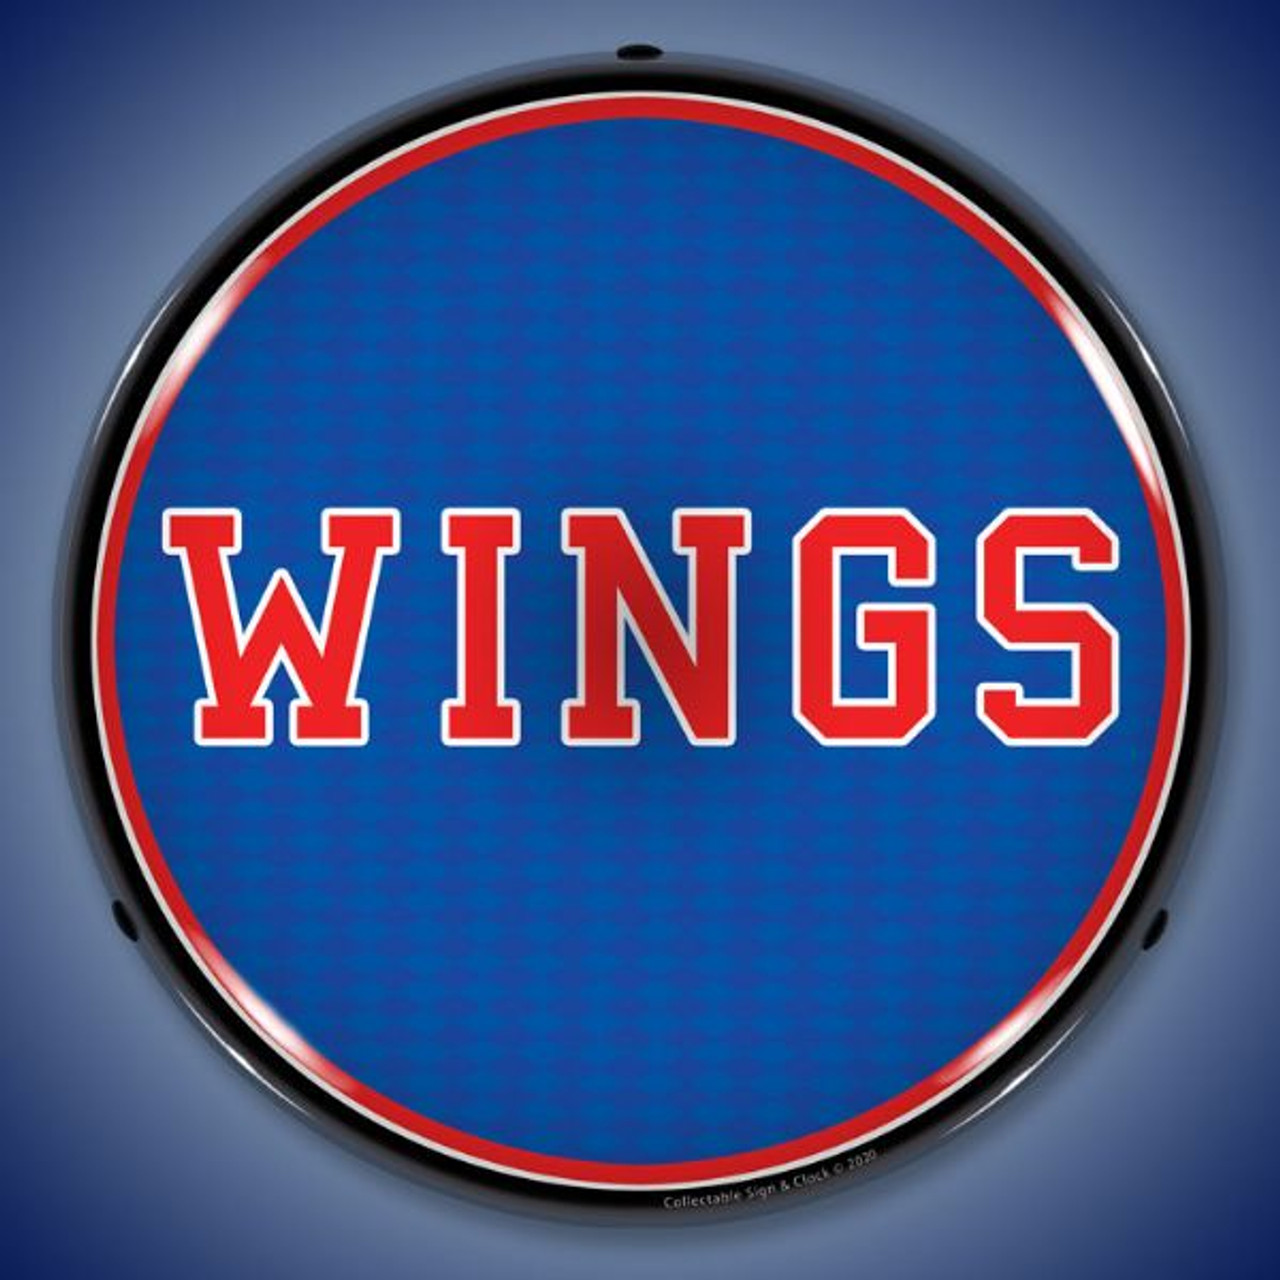 Wings LED Lighted Business Sign 14 x 14 Inches